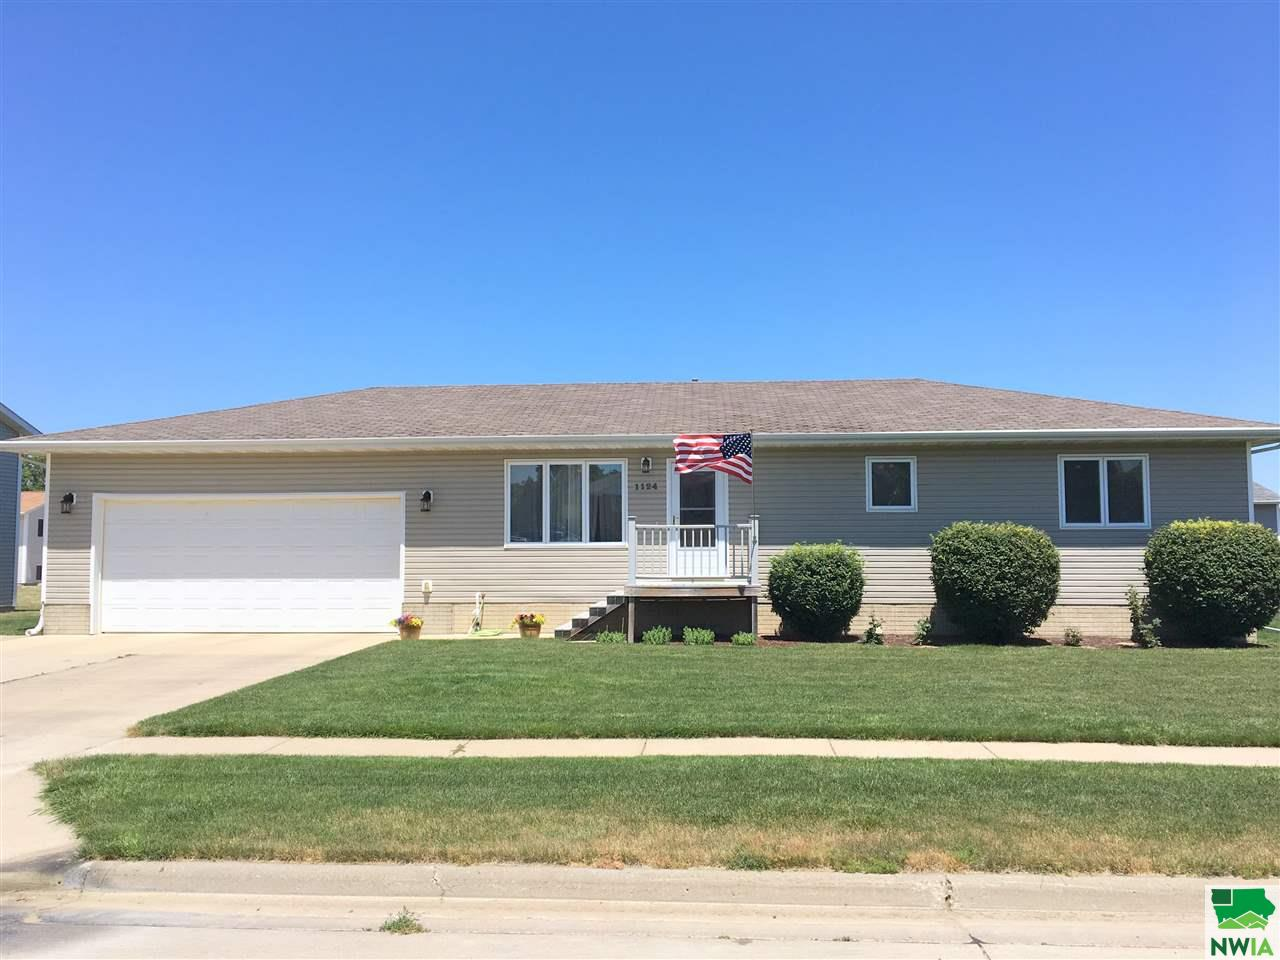 Property for sale at 1124 Madison, Vermillion,  SD 57069